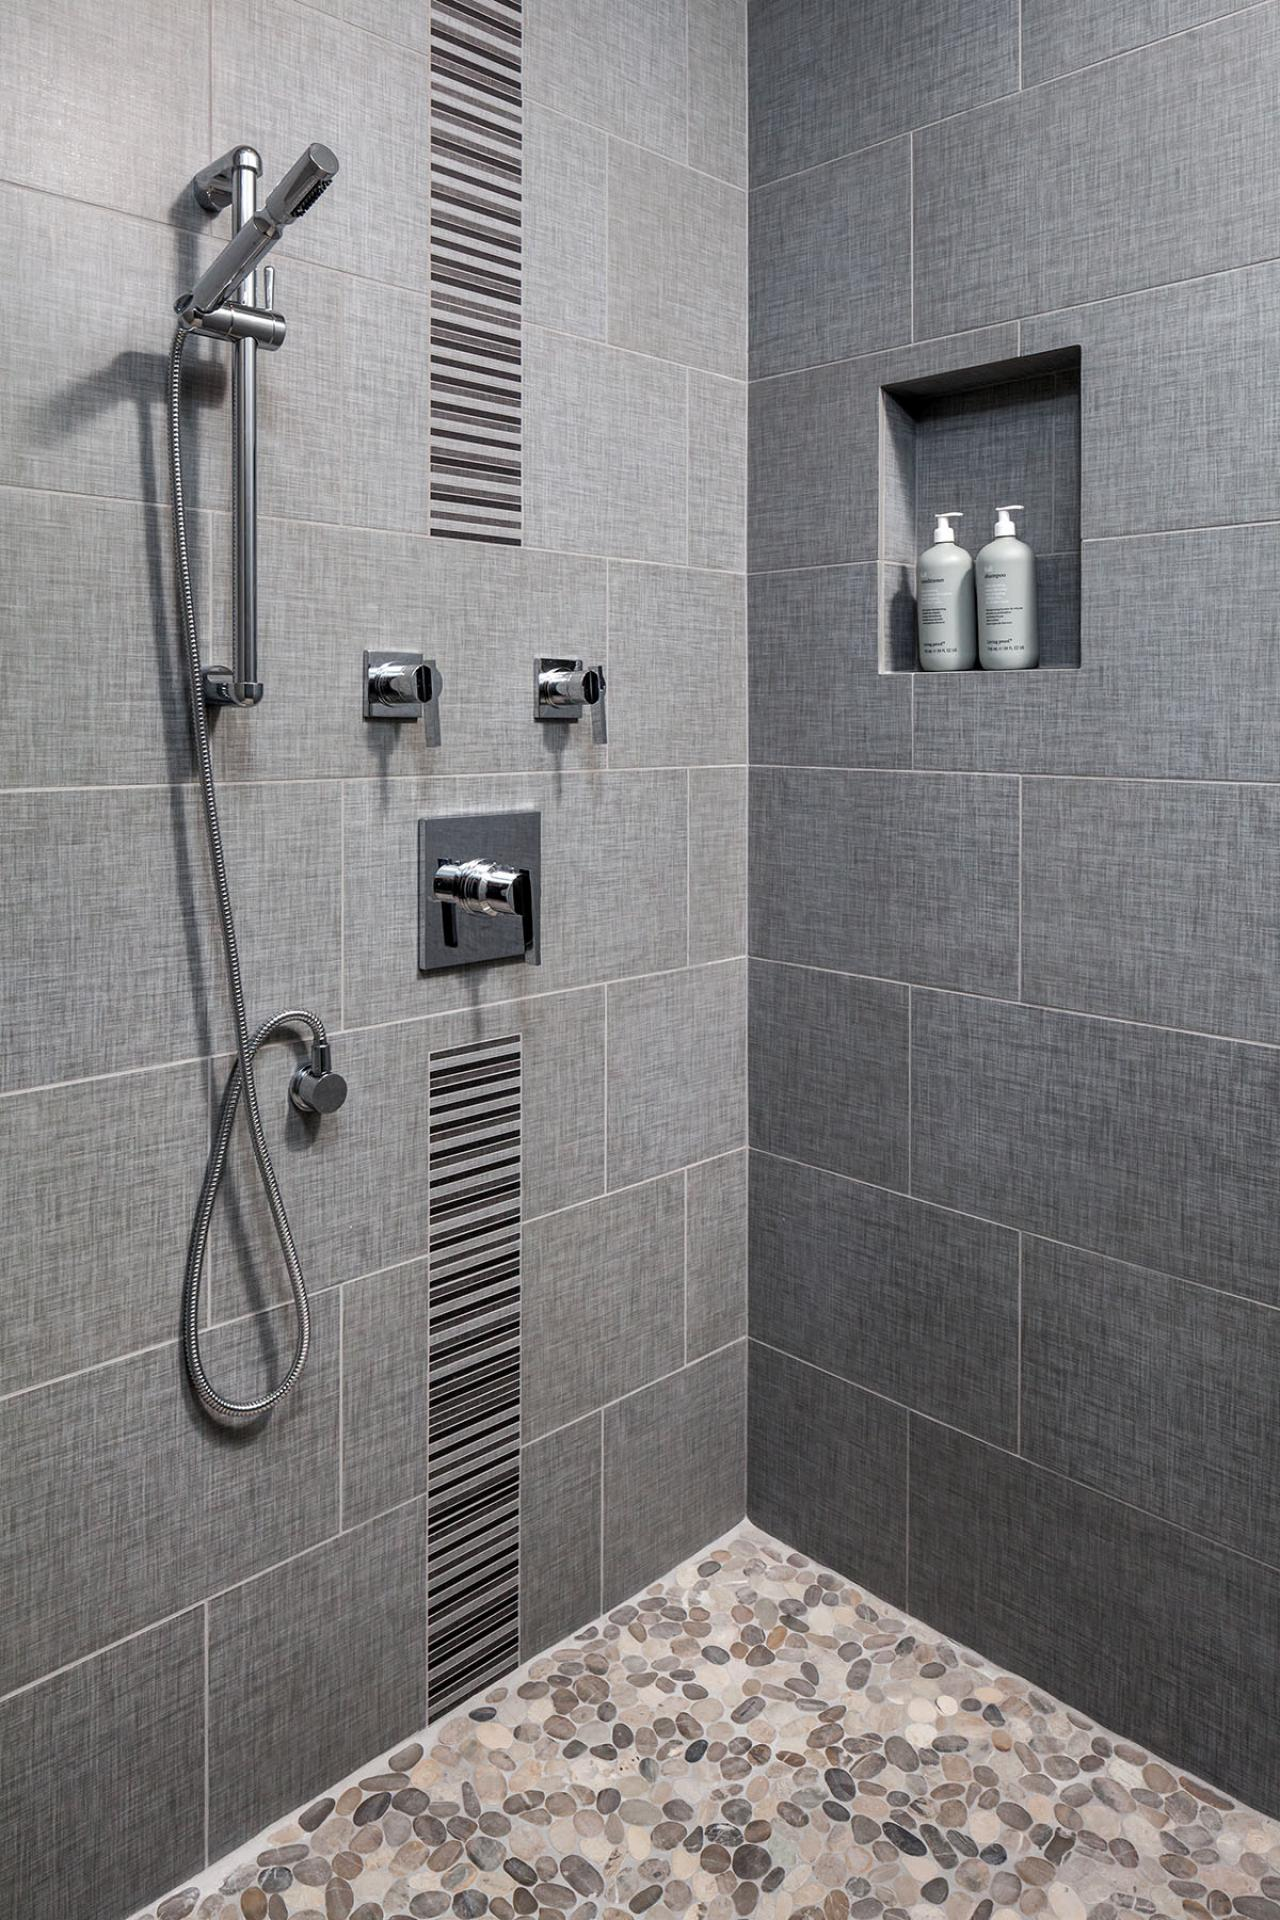 Tub To Shower Conversion Sky Renovation New Construction